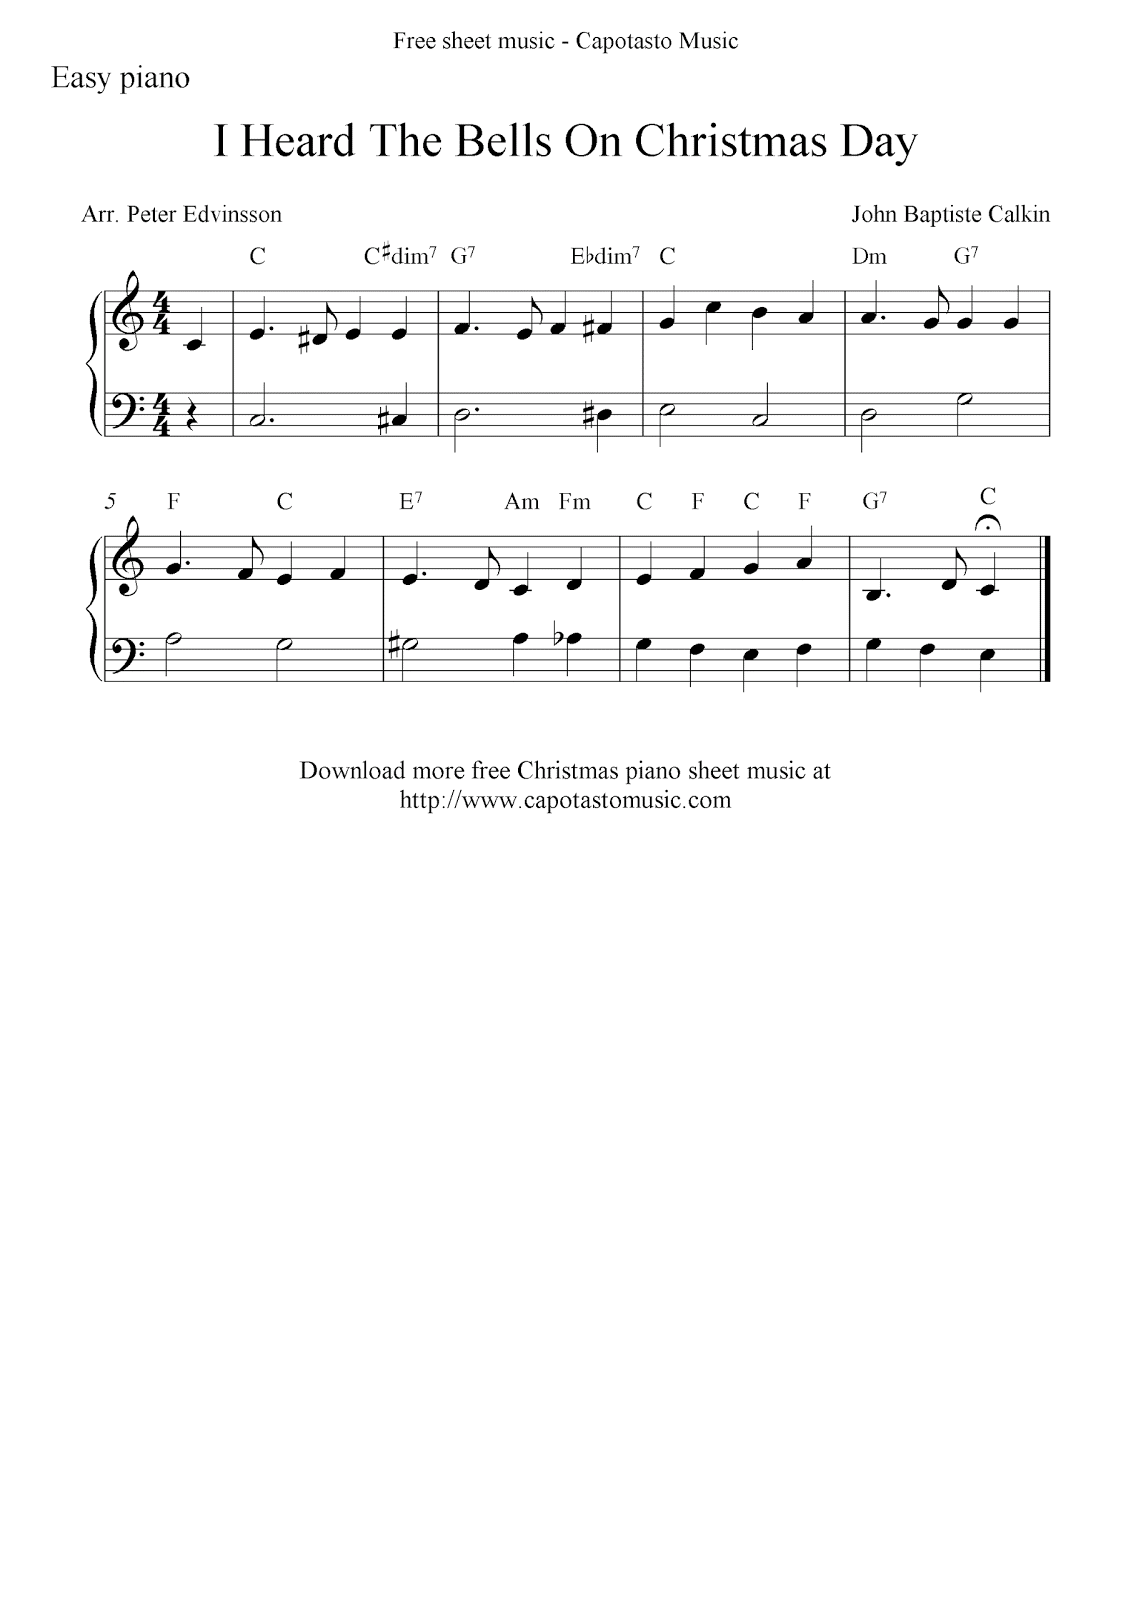 photo about Carol of the Bells Free Printable Sheet Music identify September 2011